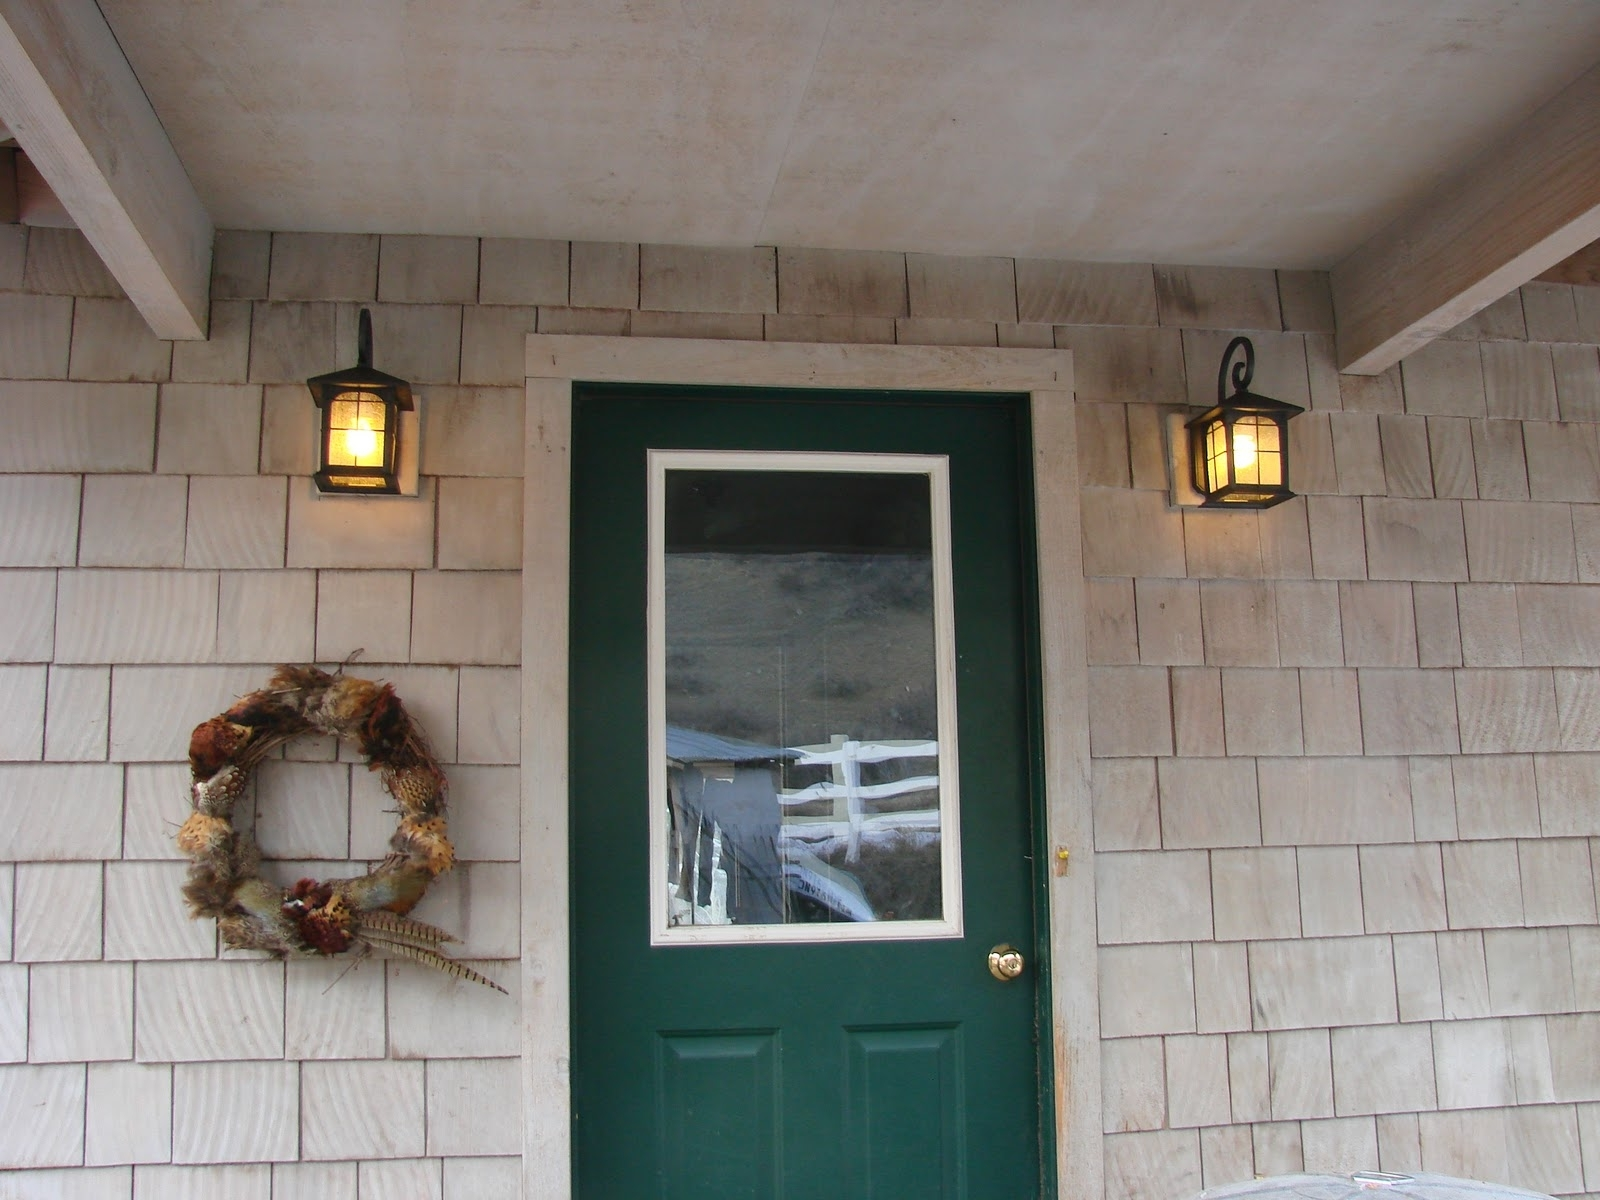 Outdoor Lanterns For Front Porch Throughout Most Recently Released Outdoor Porch Lights With Style And Good Taste — Front Porch Light (View 15 of 20)